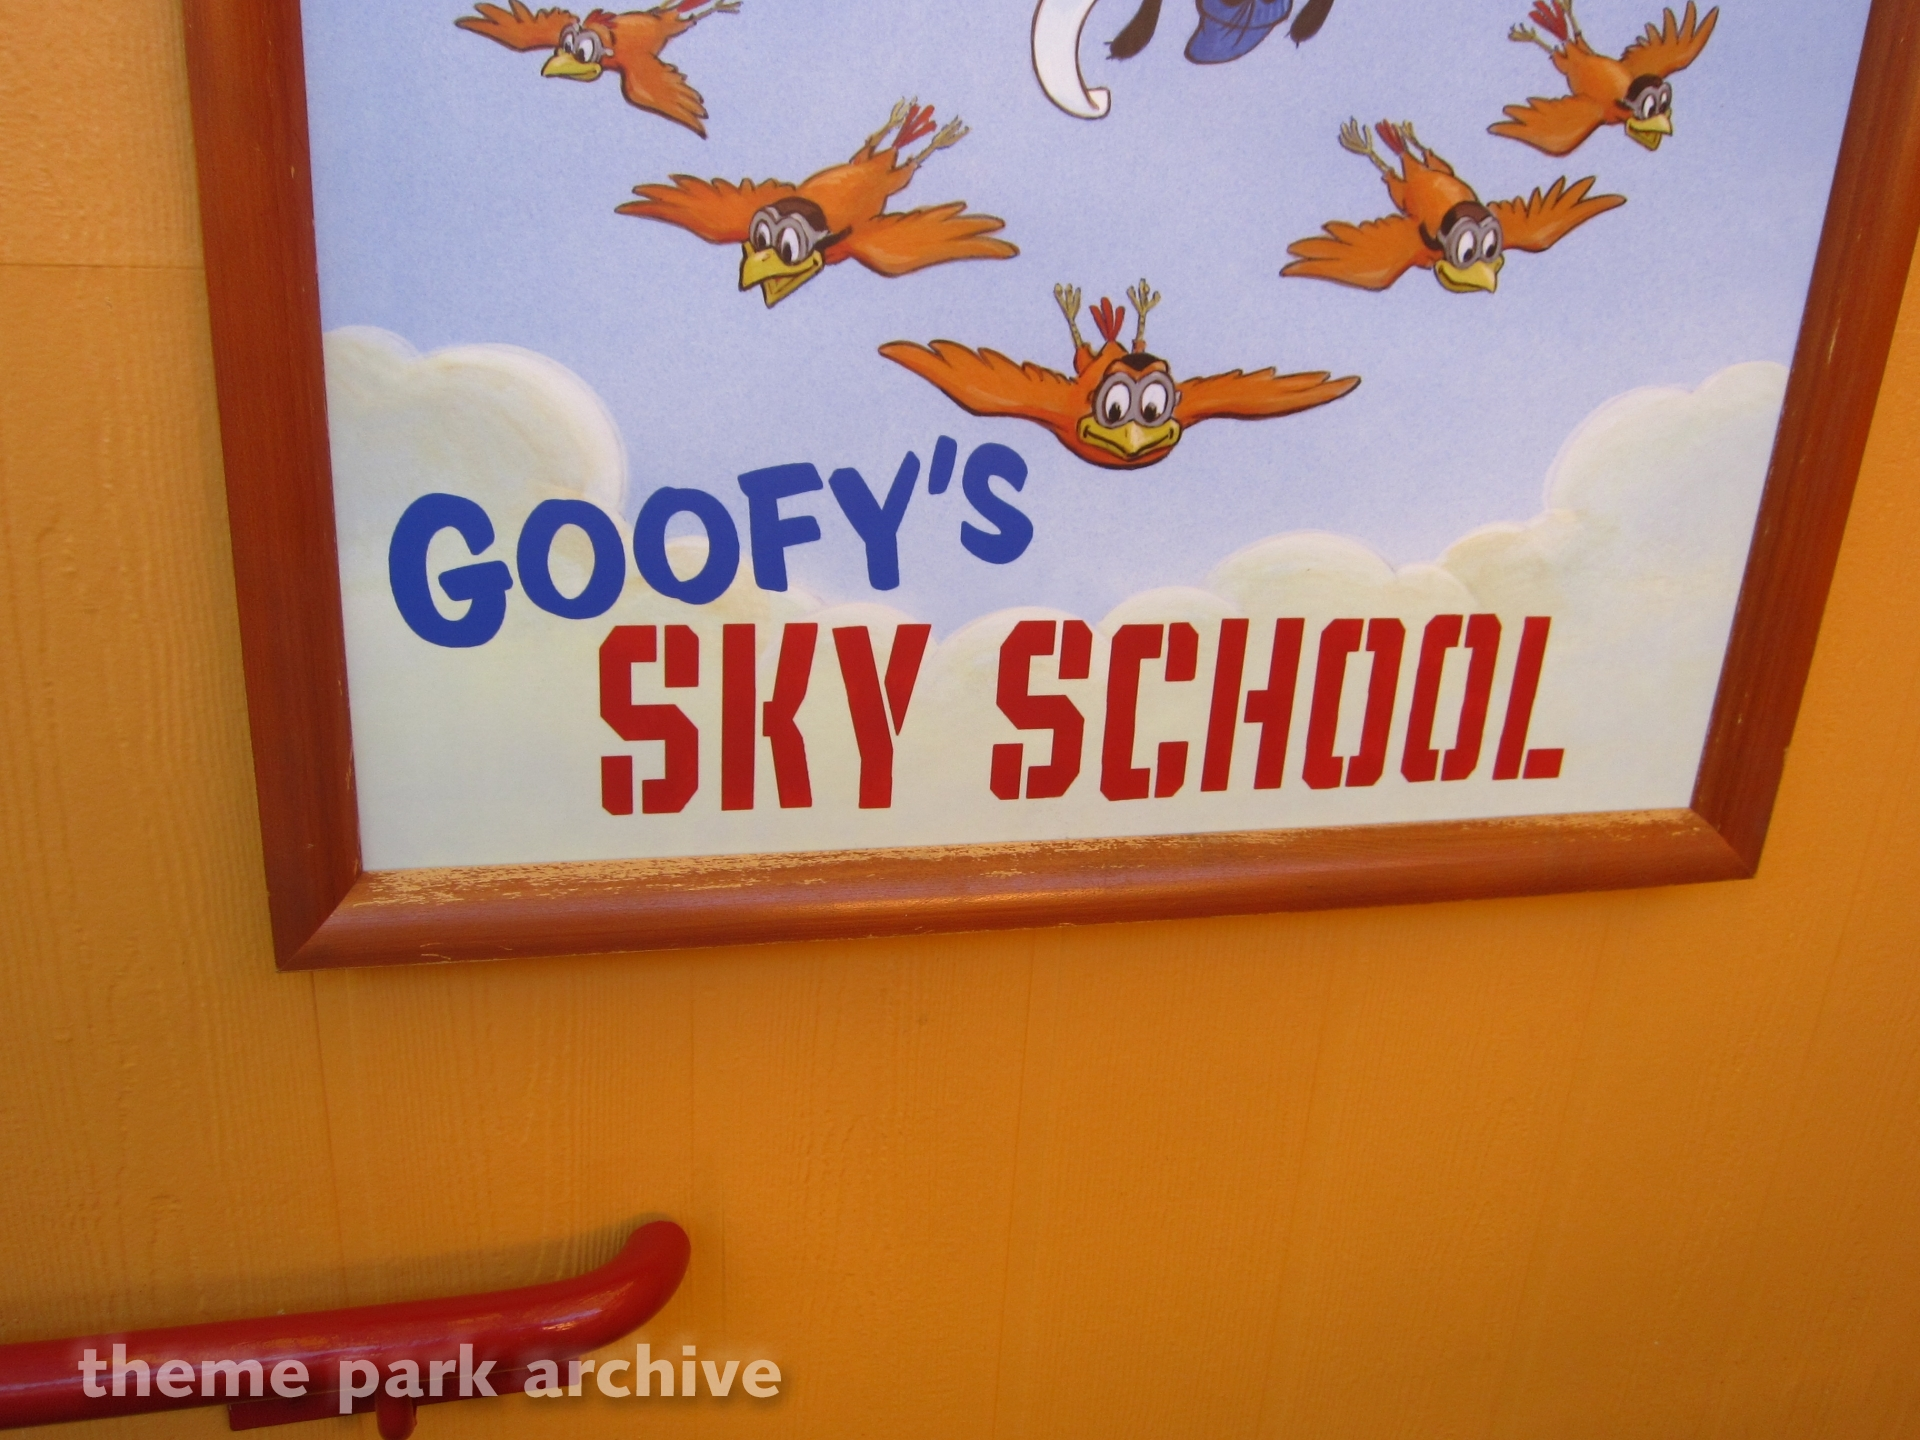 Goofy's Sky School at Disney California Adventure